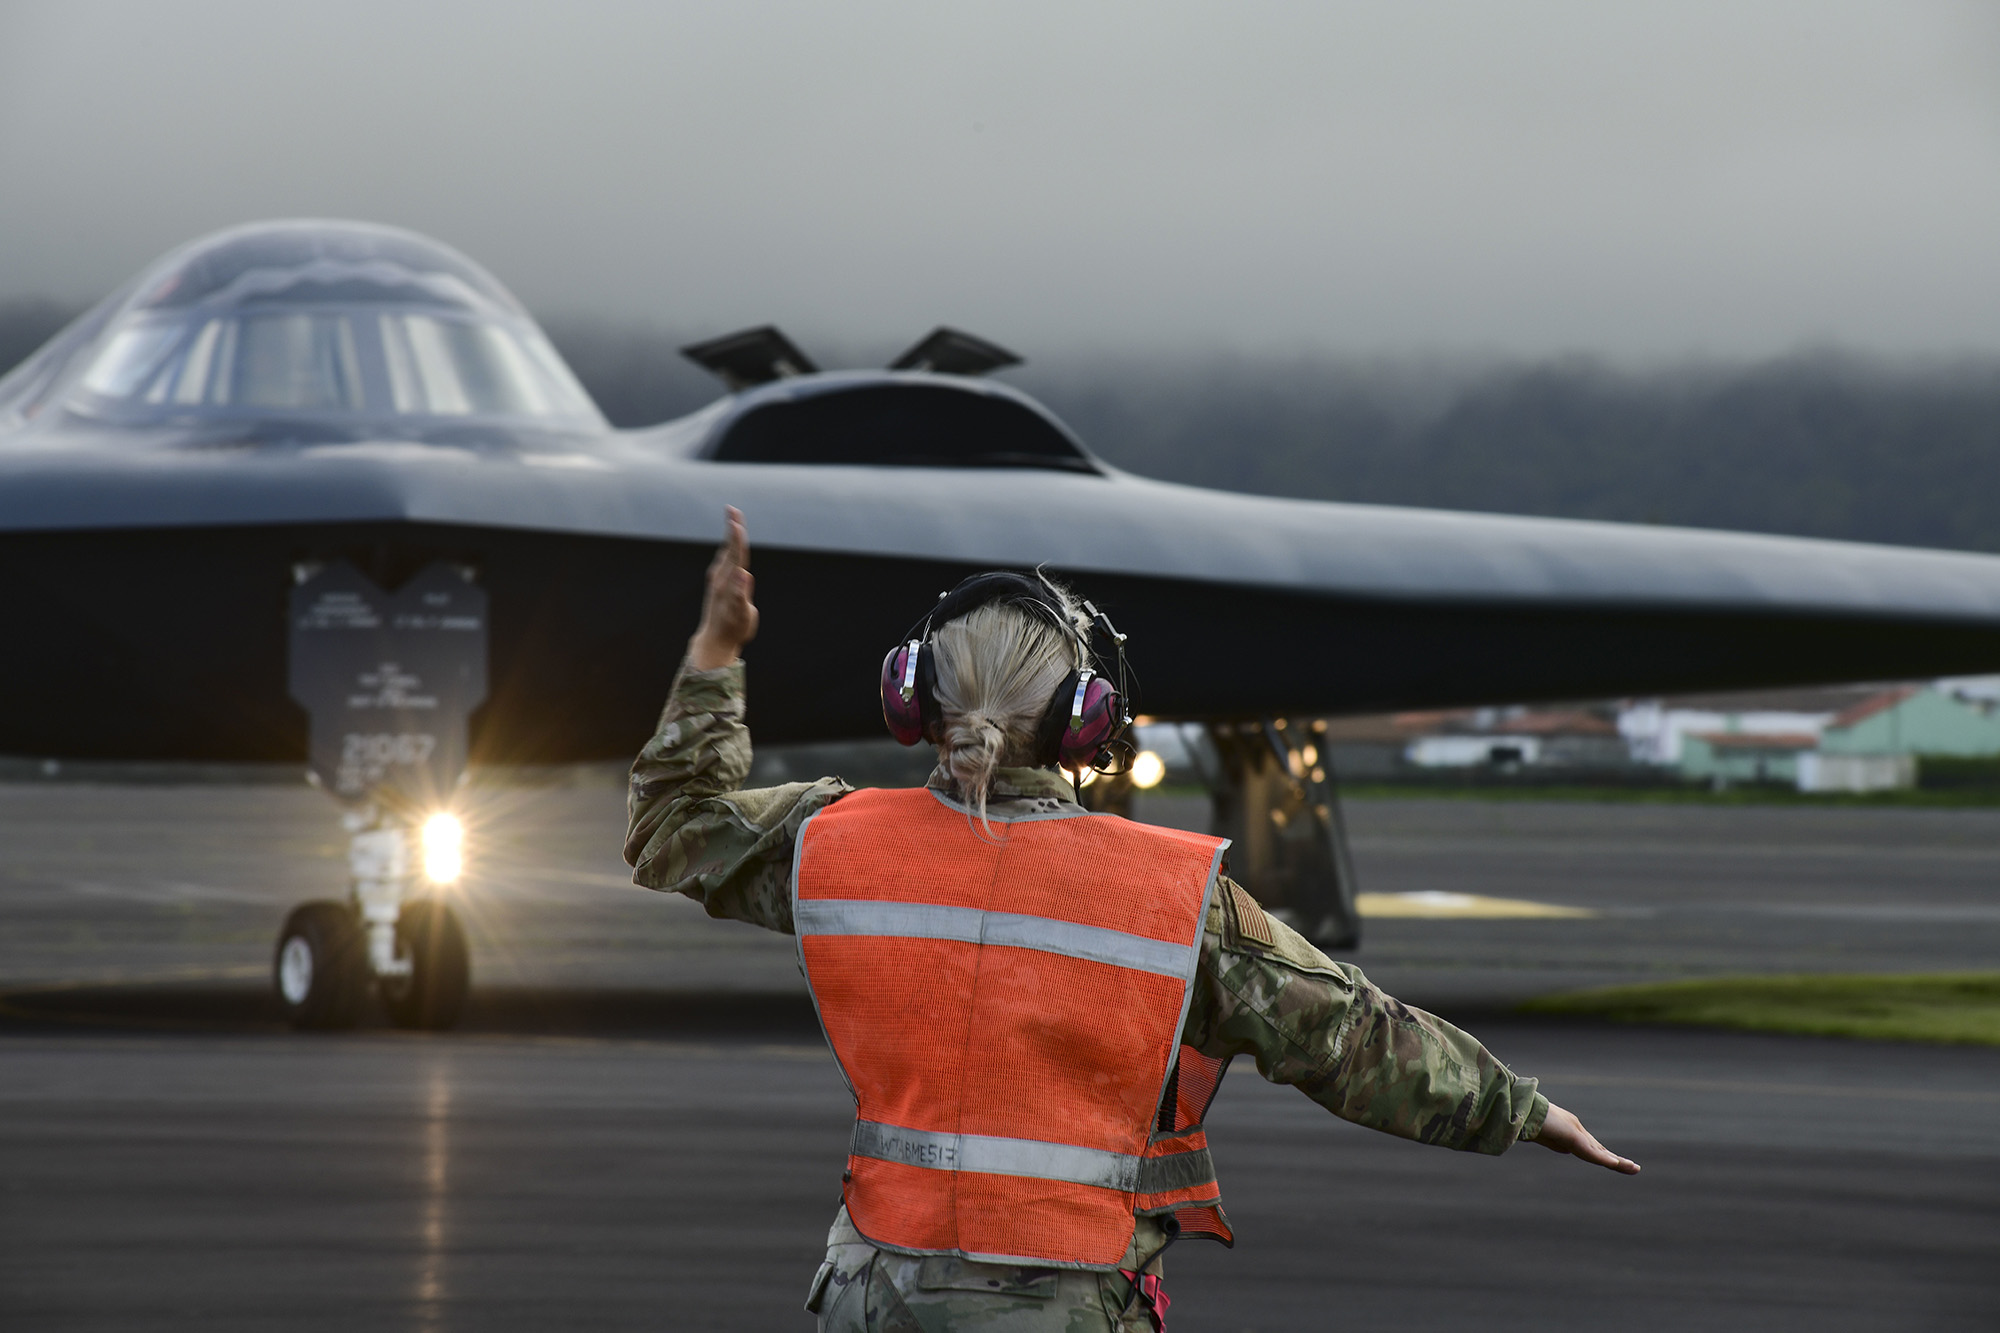 Three B-2 Spirit stealth bombers depart Lajes Field, Azores, March 16, 2021. The B-2s refueled at Lajes prior to supporting bomber task force missions in the Arctic region. (Tech. Sgt. Heather Salazar/Air Force)